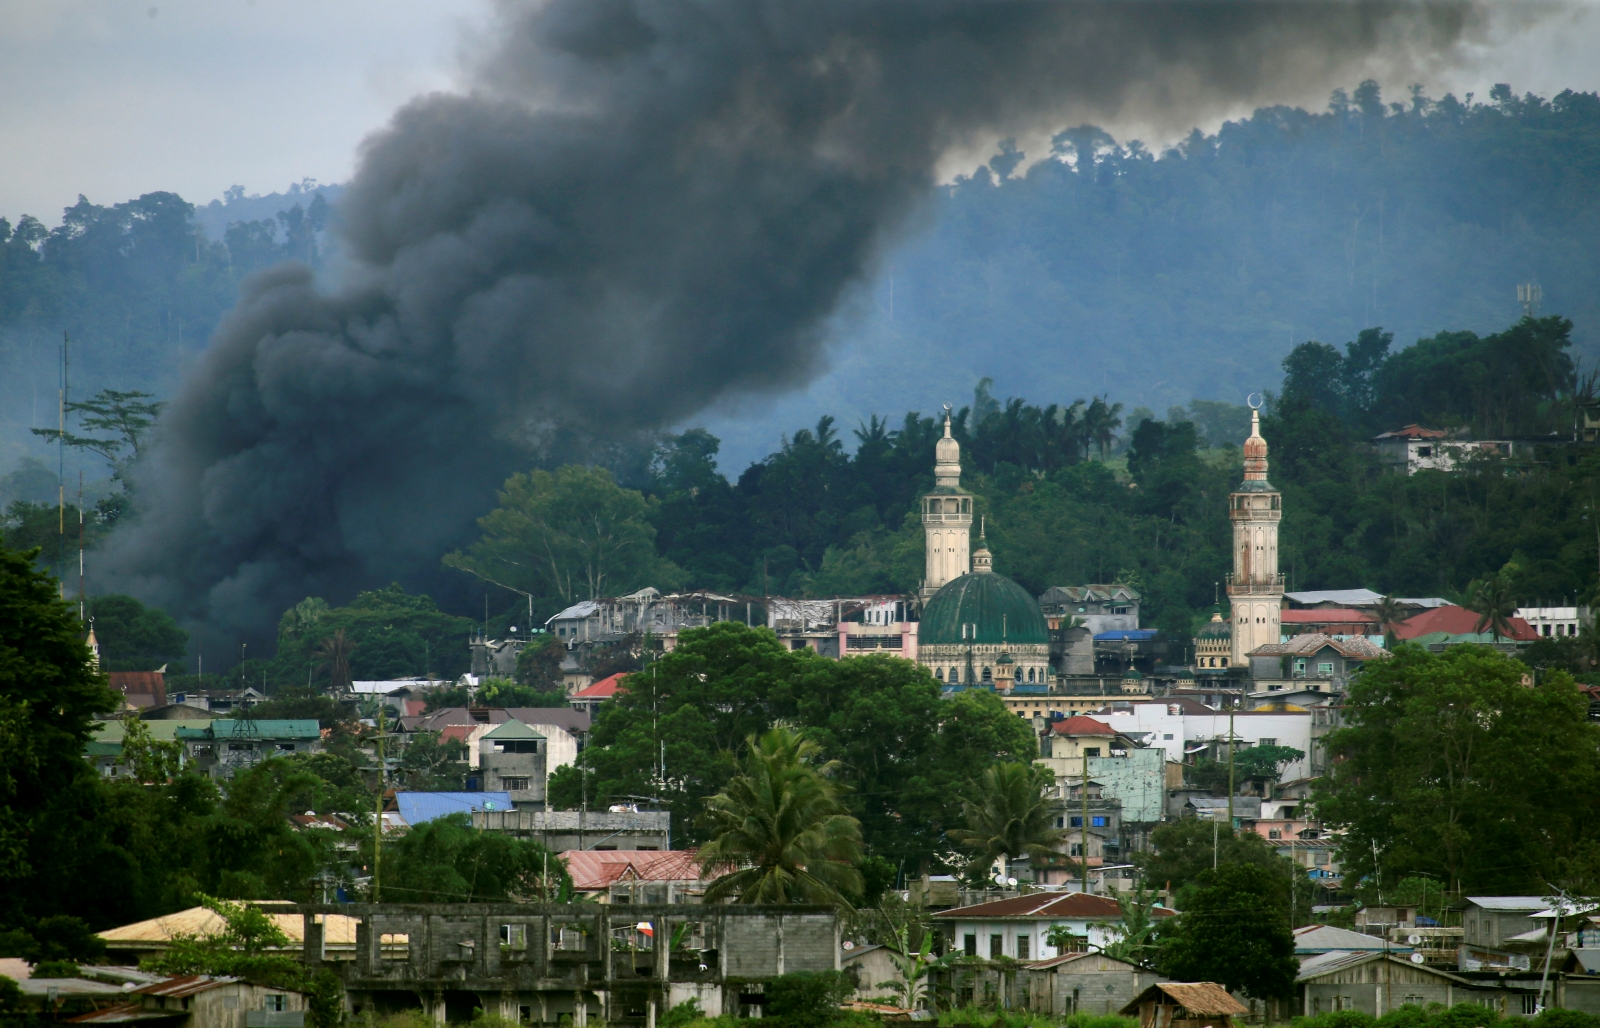 Smoke billows from a burning building as government troops continue their assault against insurgents from the Maute group, who have taken over large parts of Marawi city, Philippines June 16, 2017